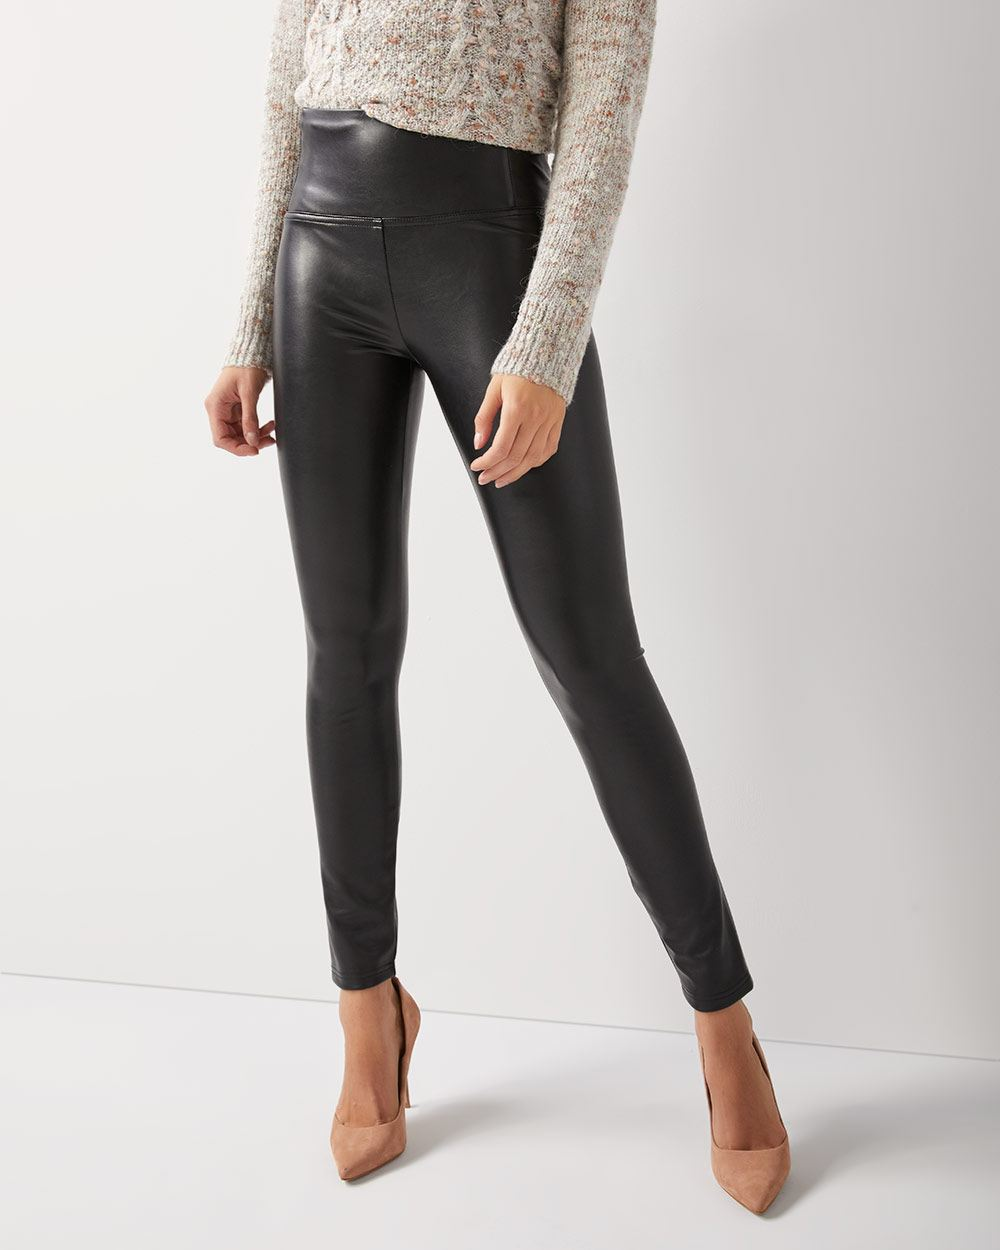 a2a835cd792bd High-waist Faux-leather legging | RW&CO.